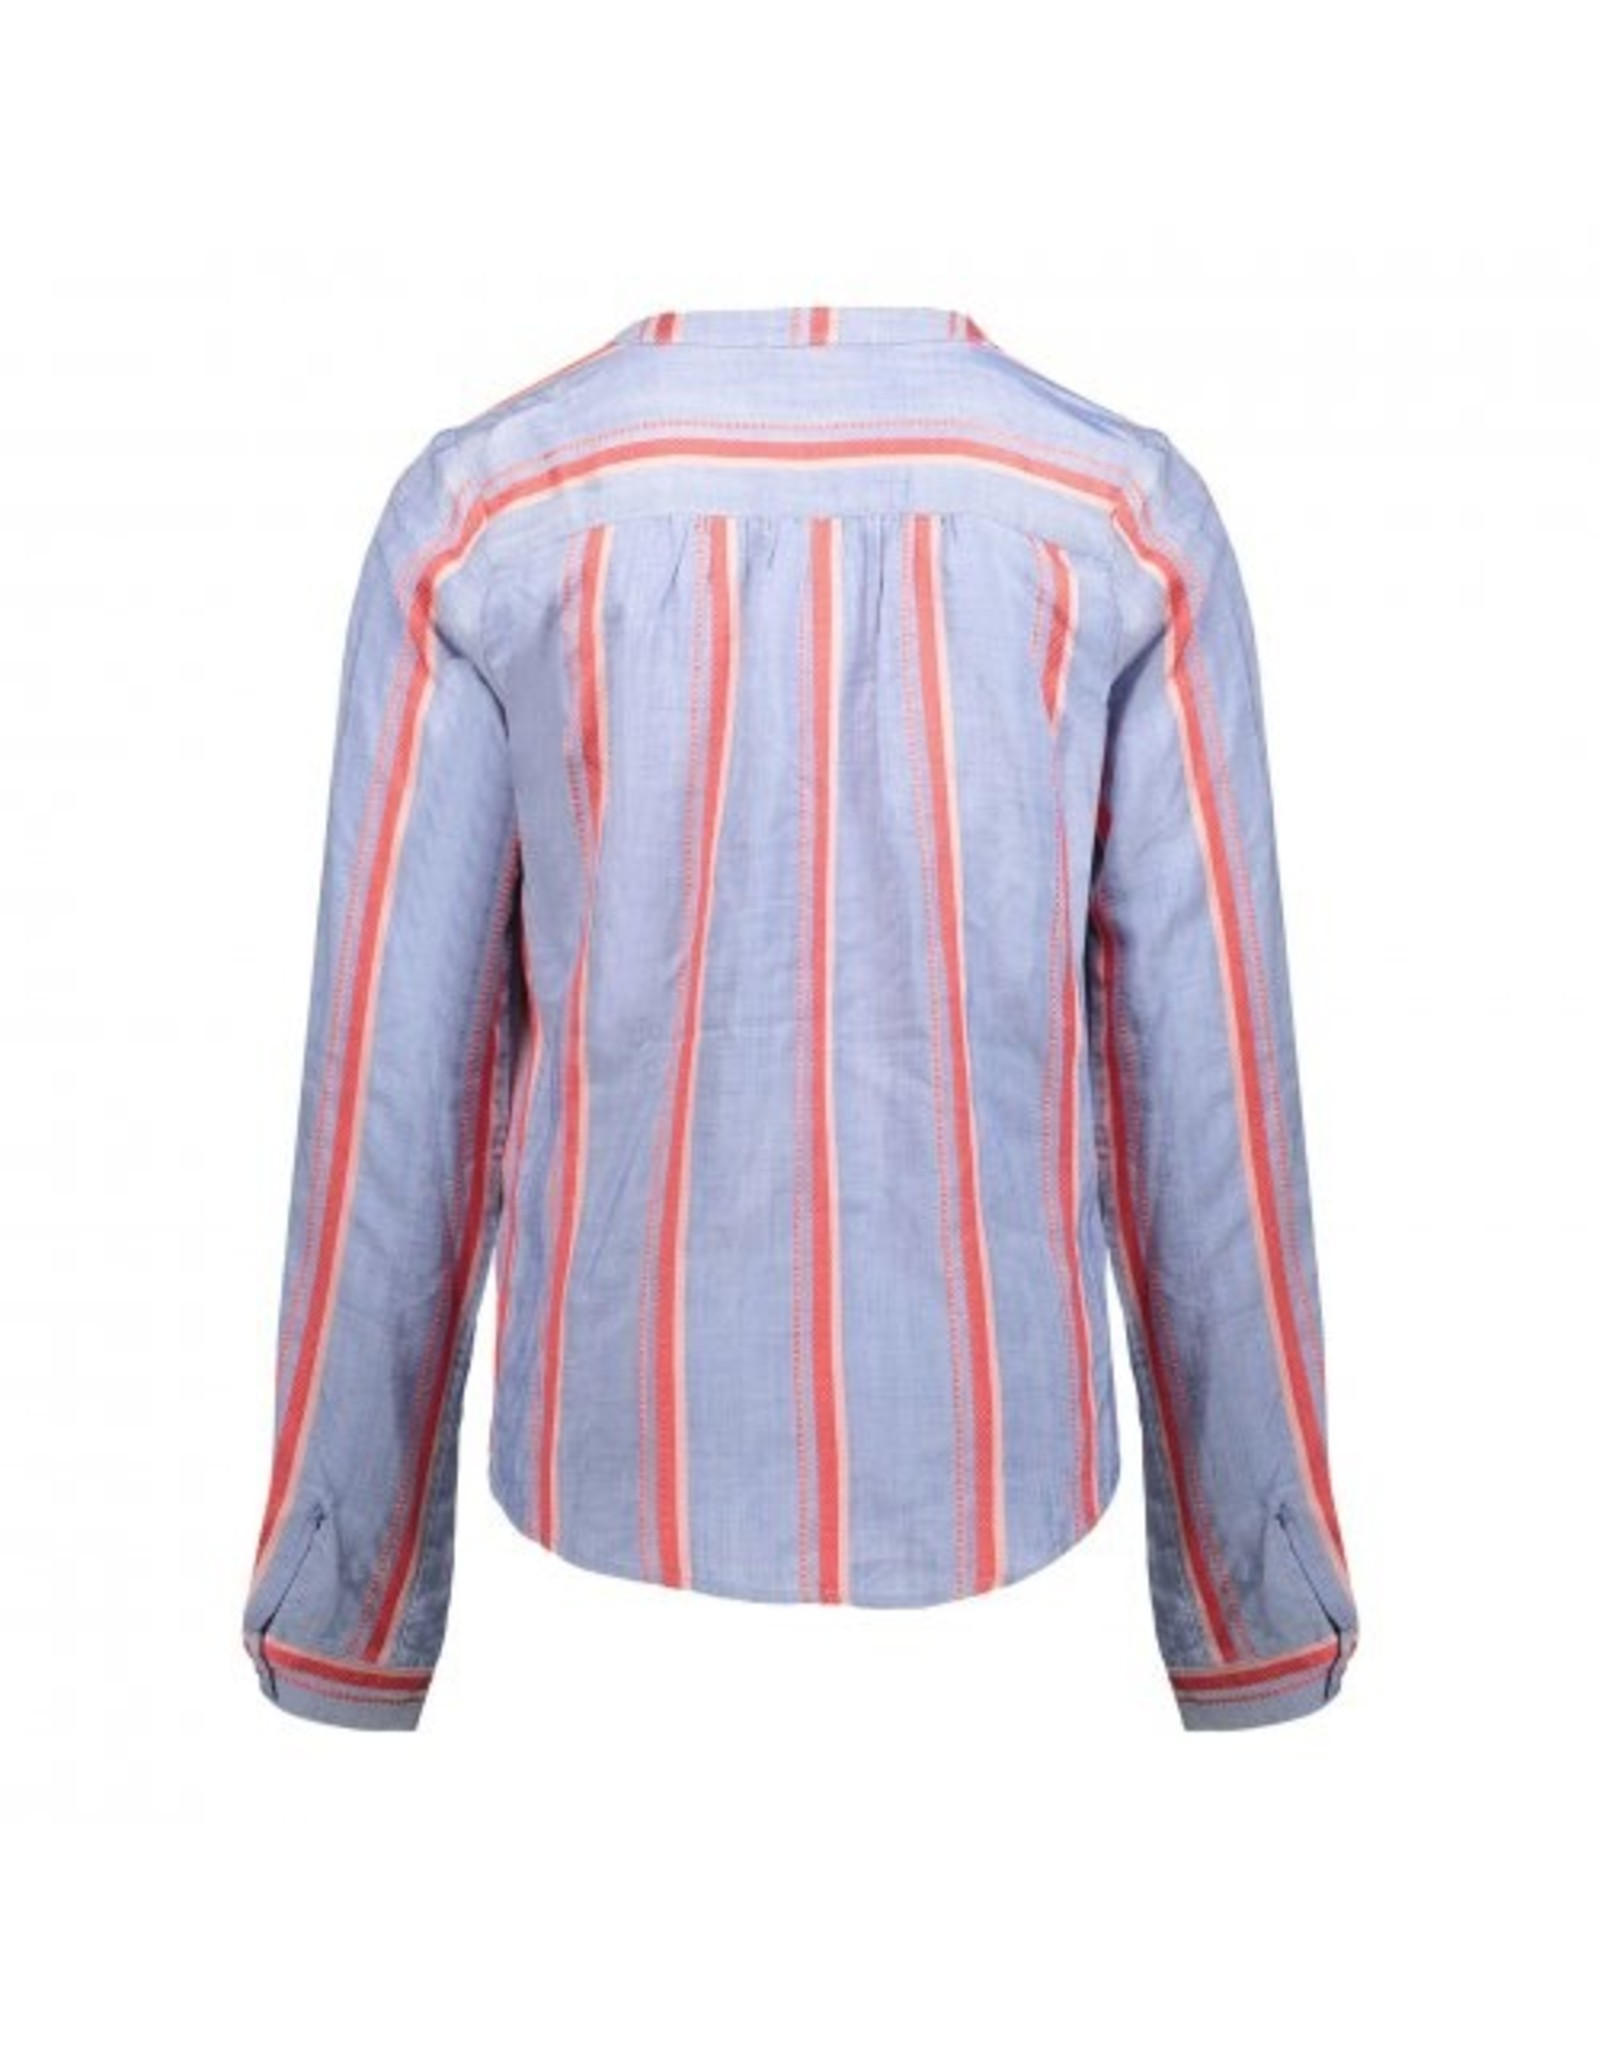 Geisha Top striped l/s